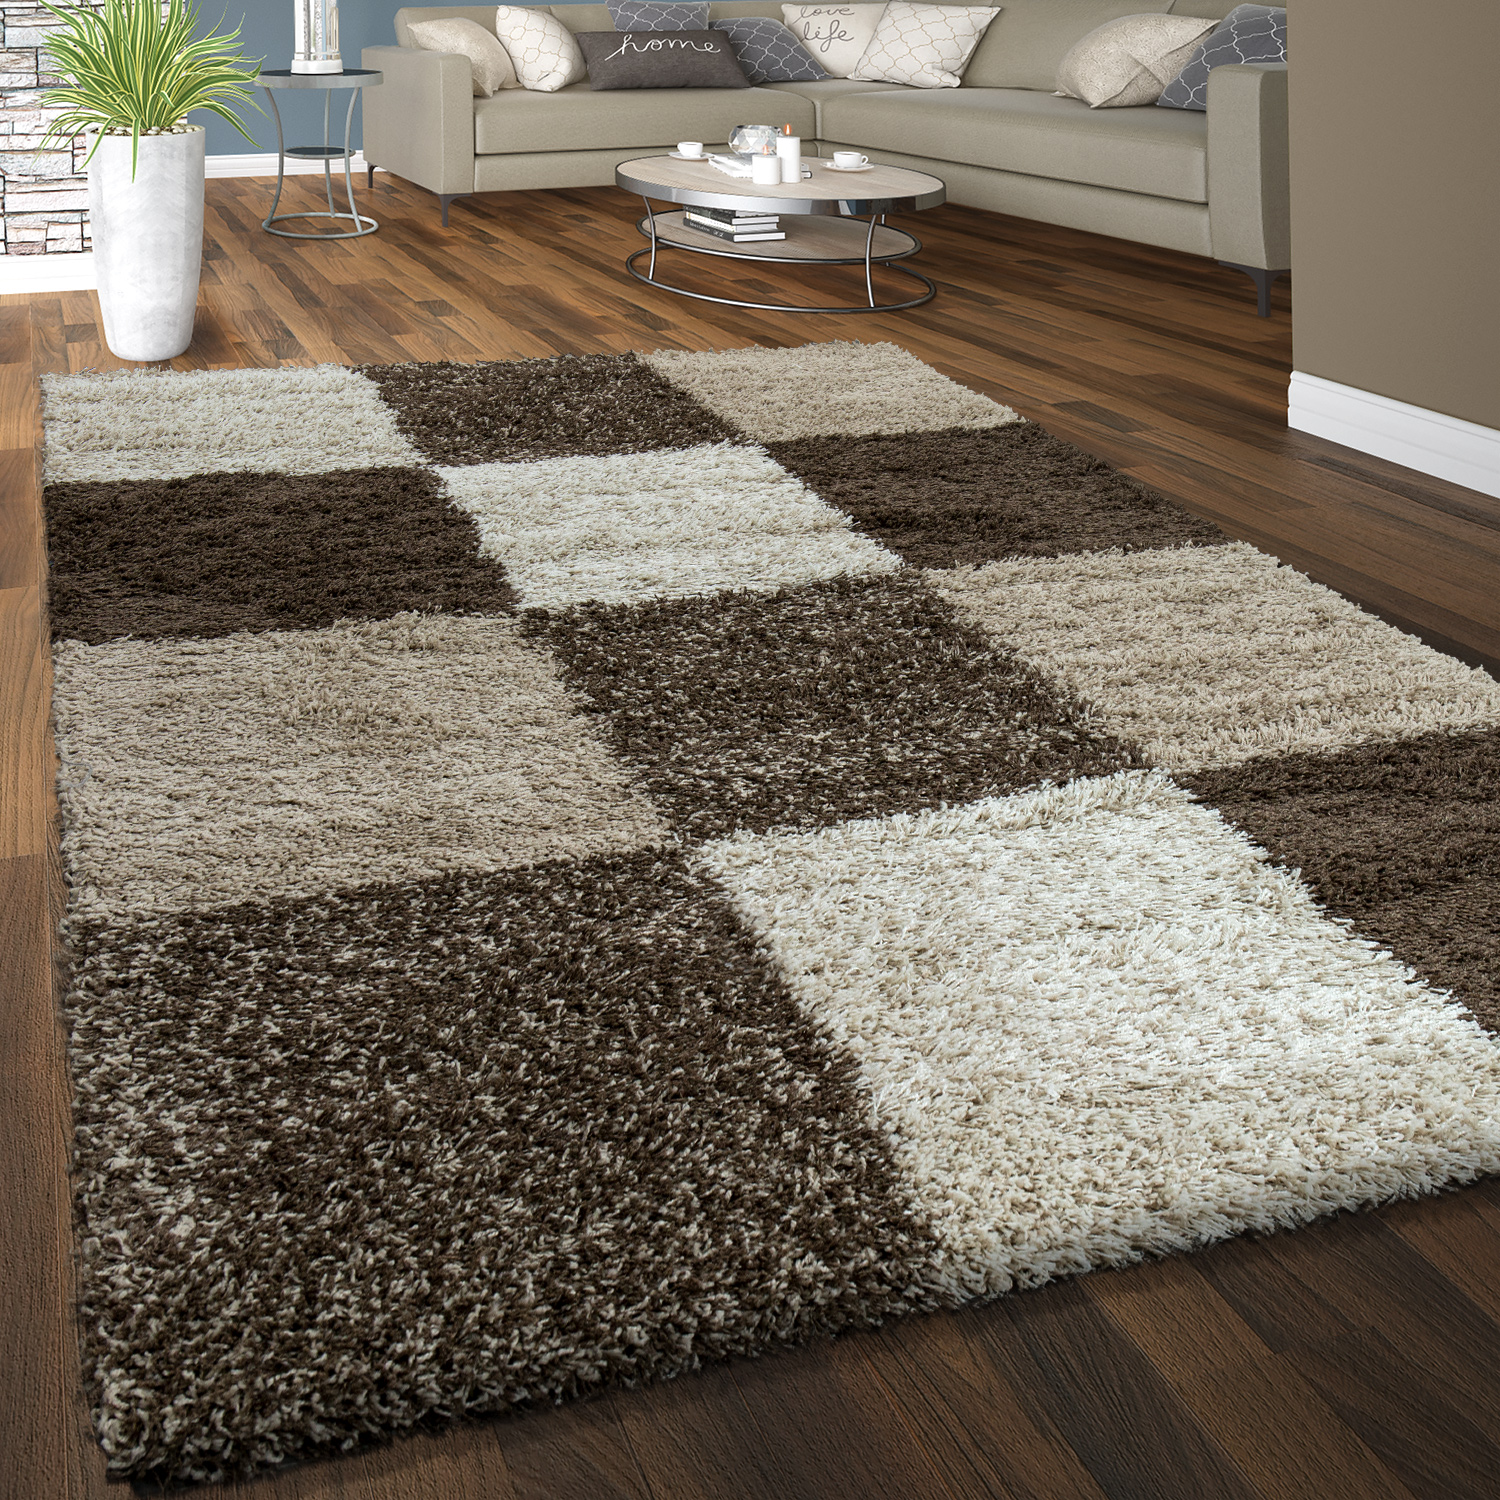 Teppich Adum Teppich Shaggy Beige Trendy Hover To Zoom With Teppich Shaggy